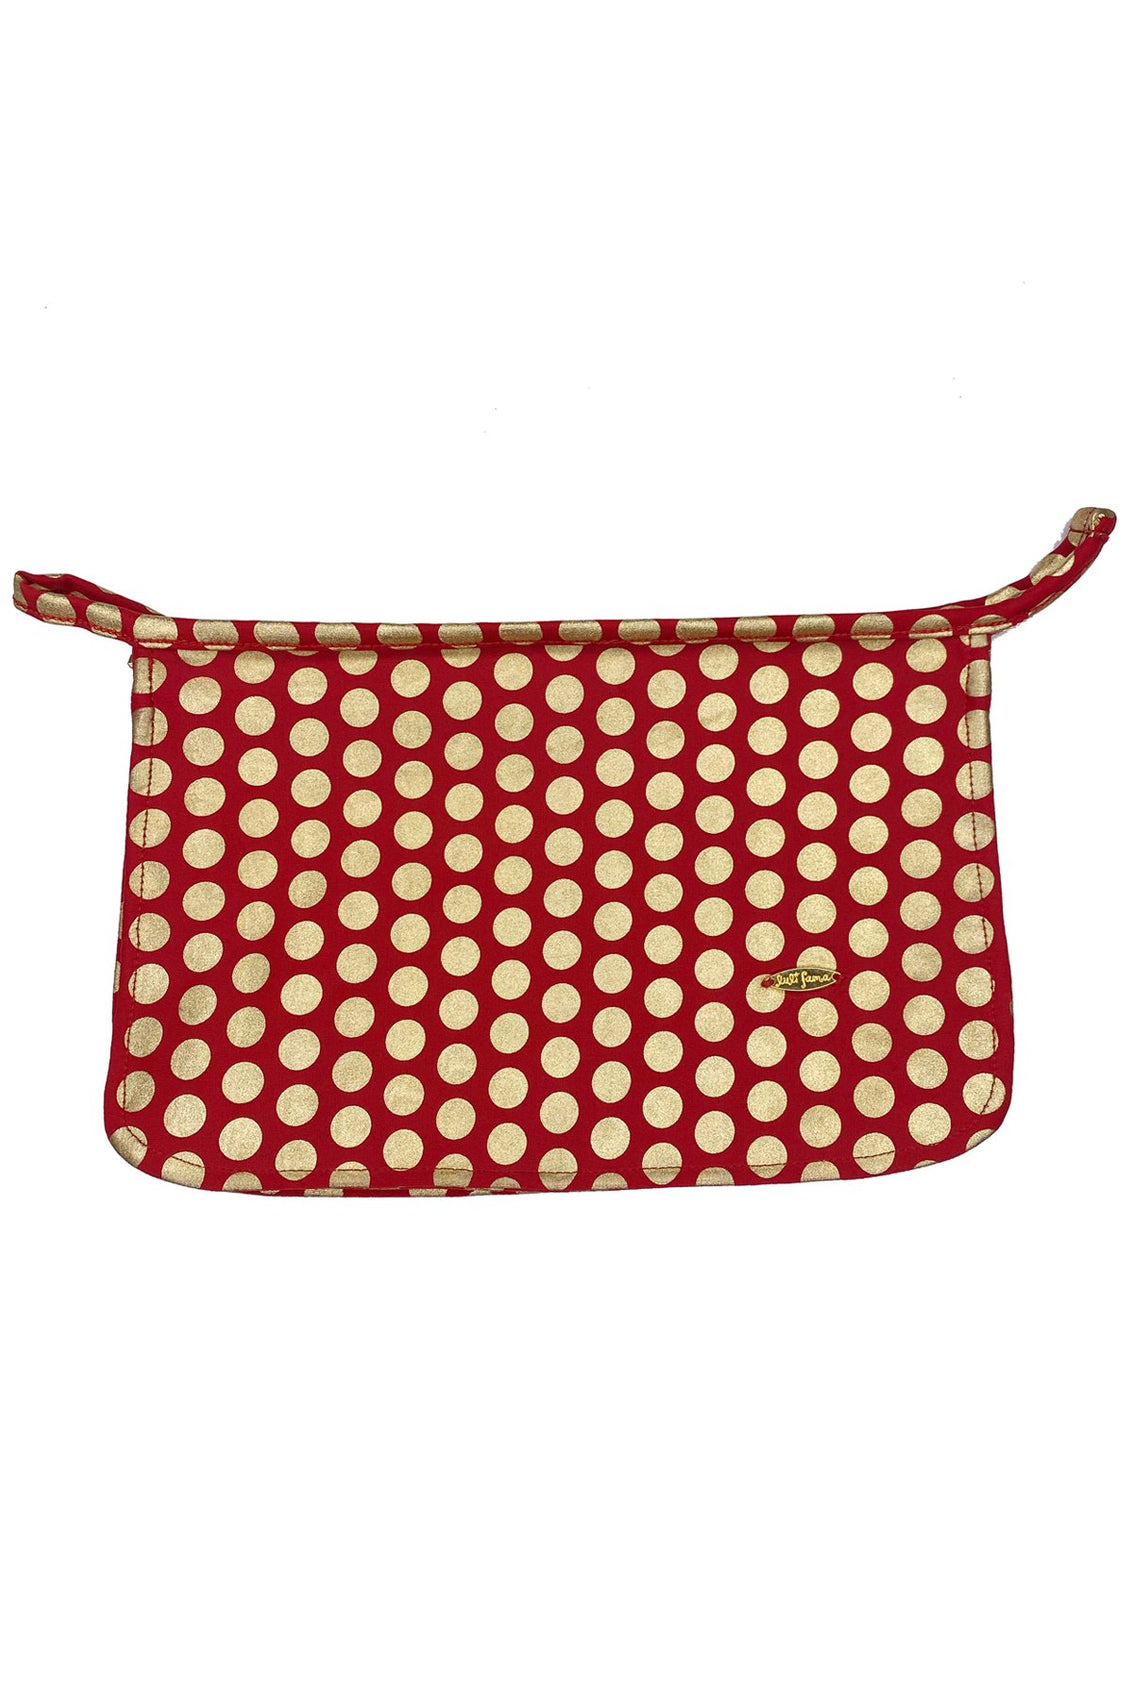 DOTTED DELIGHT - Bikini Bag • Ruby Red